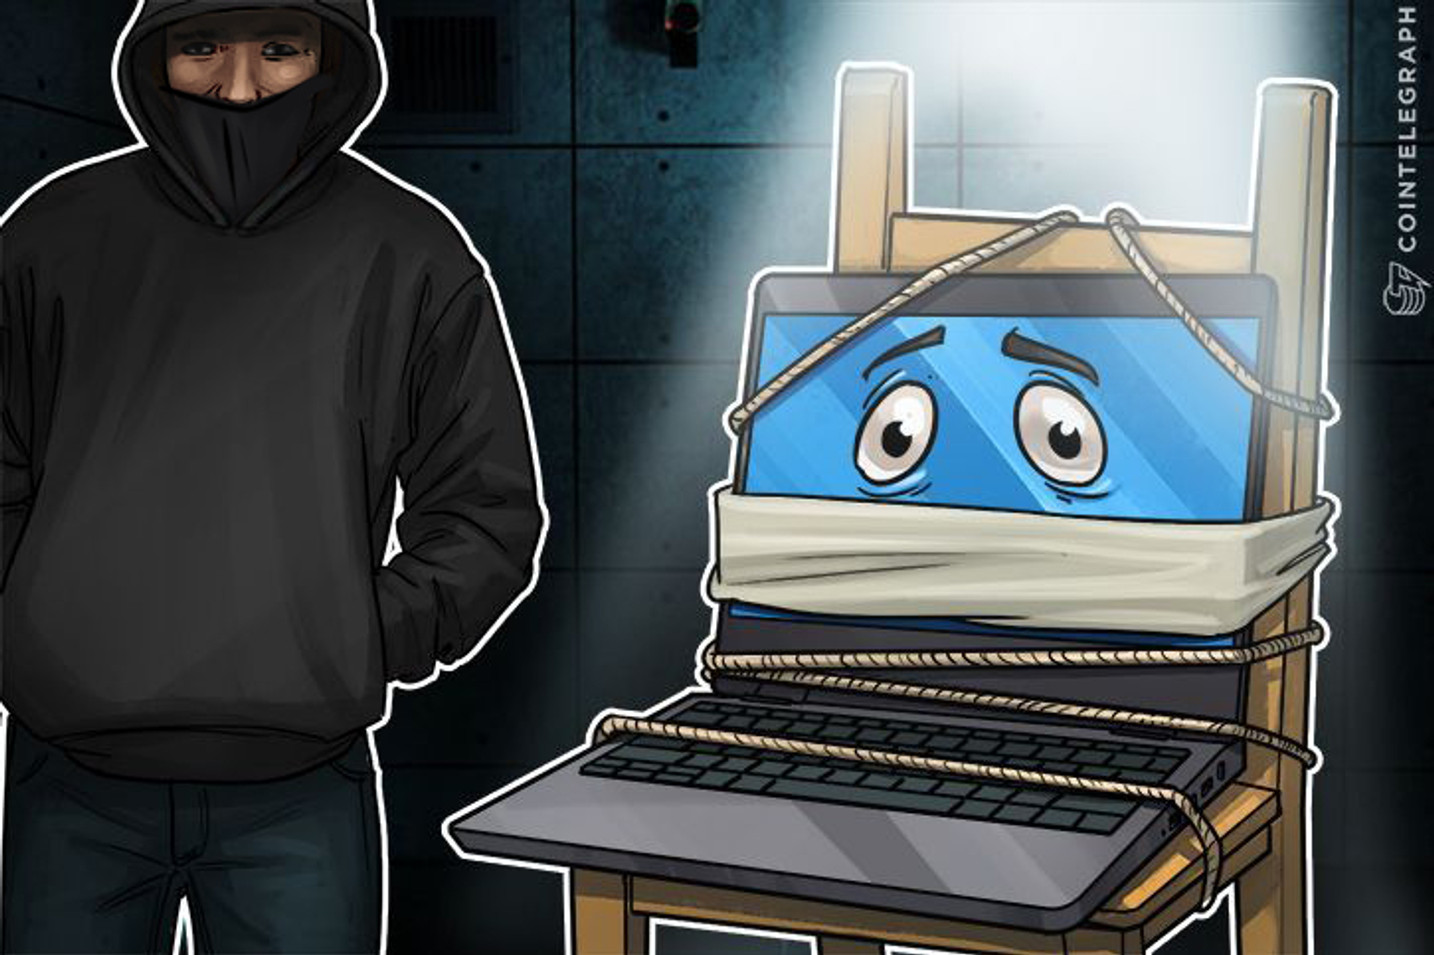 Russian Crypto Developer Beaten, Robbed Of 300 BTC On Moscow Streets